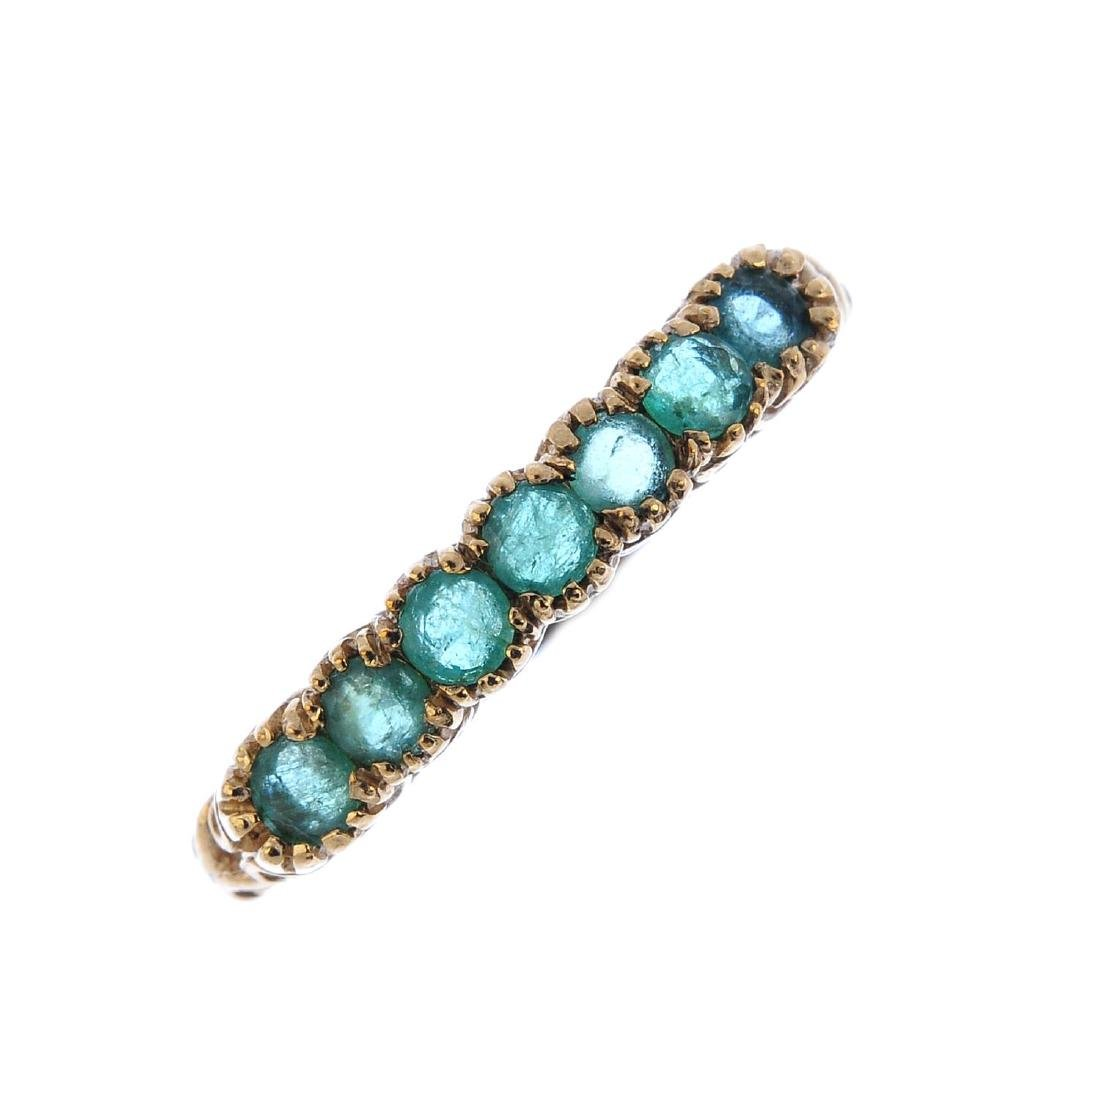 A 9ct gold emerald half eternity ring. The